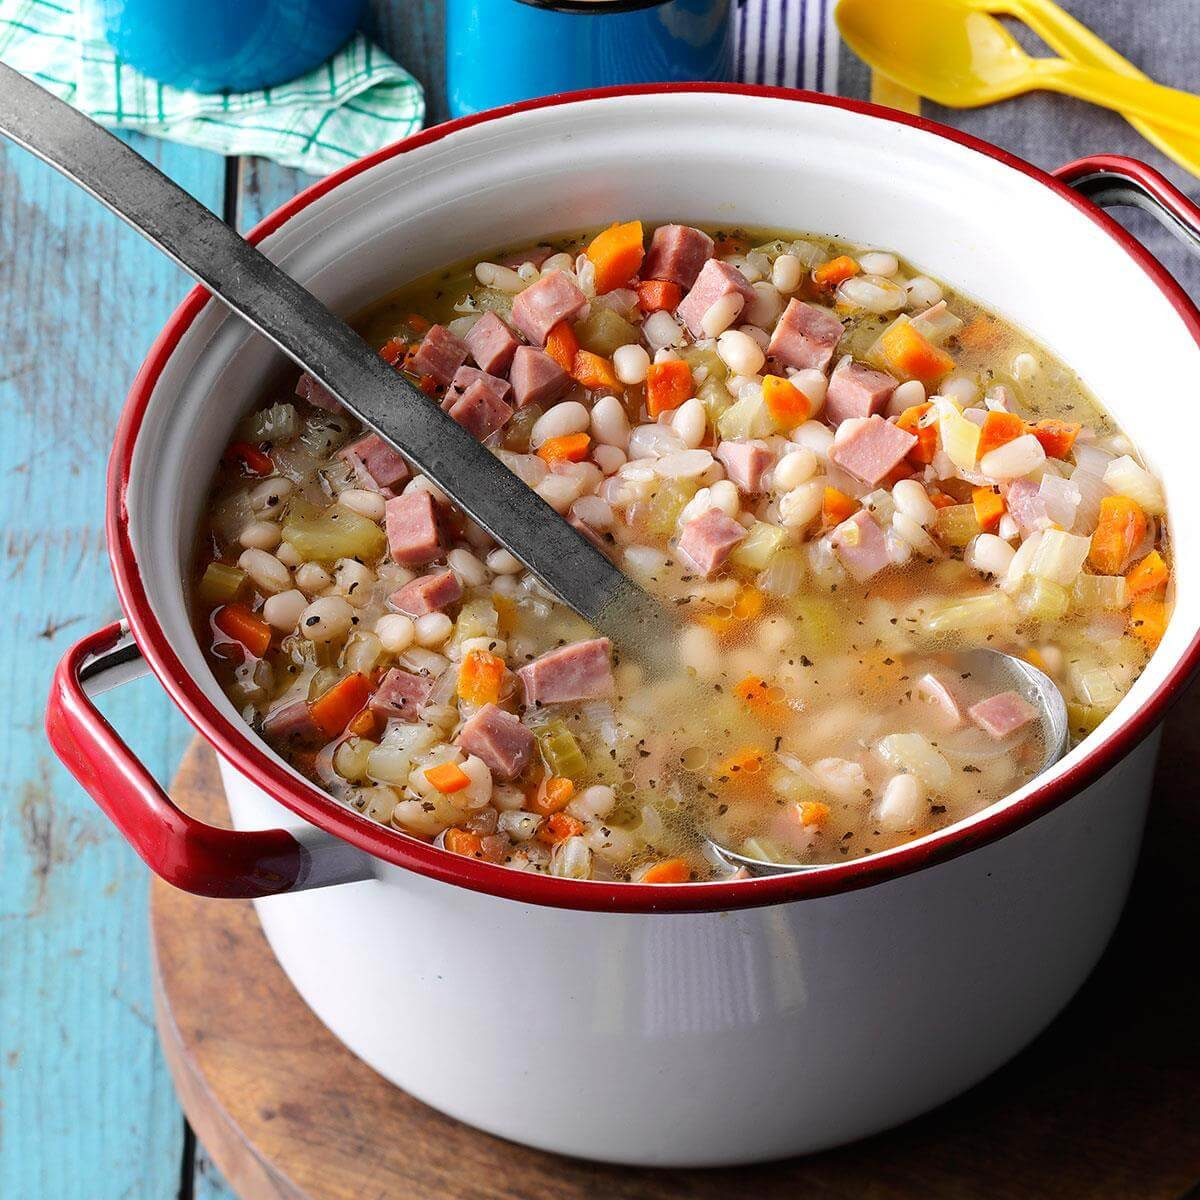 15 Dutch Oven Camping Recipes To Make Over The Fire